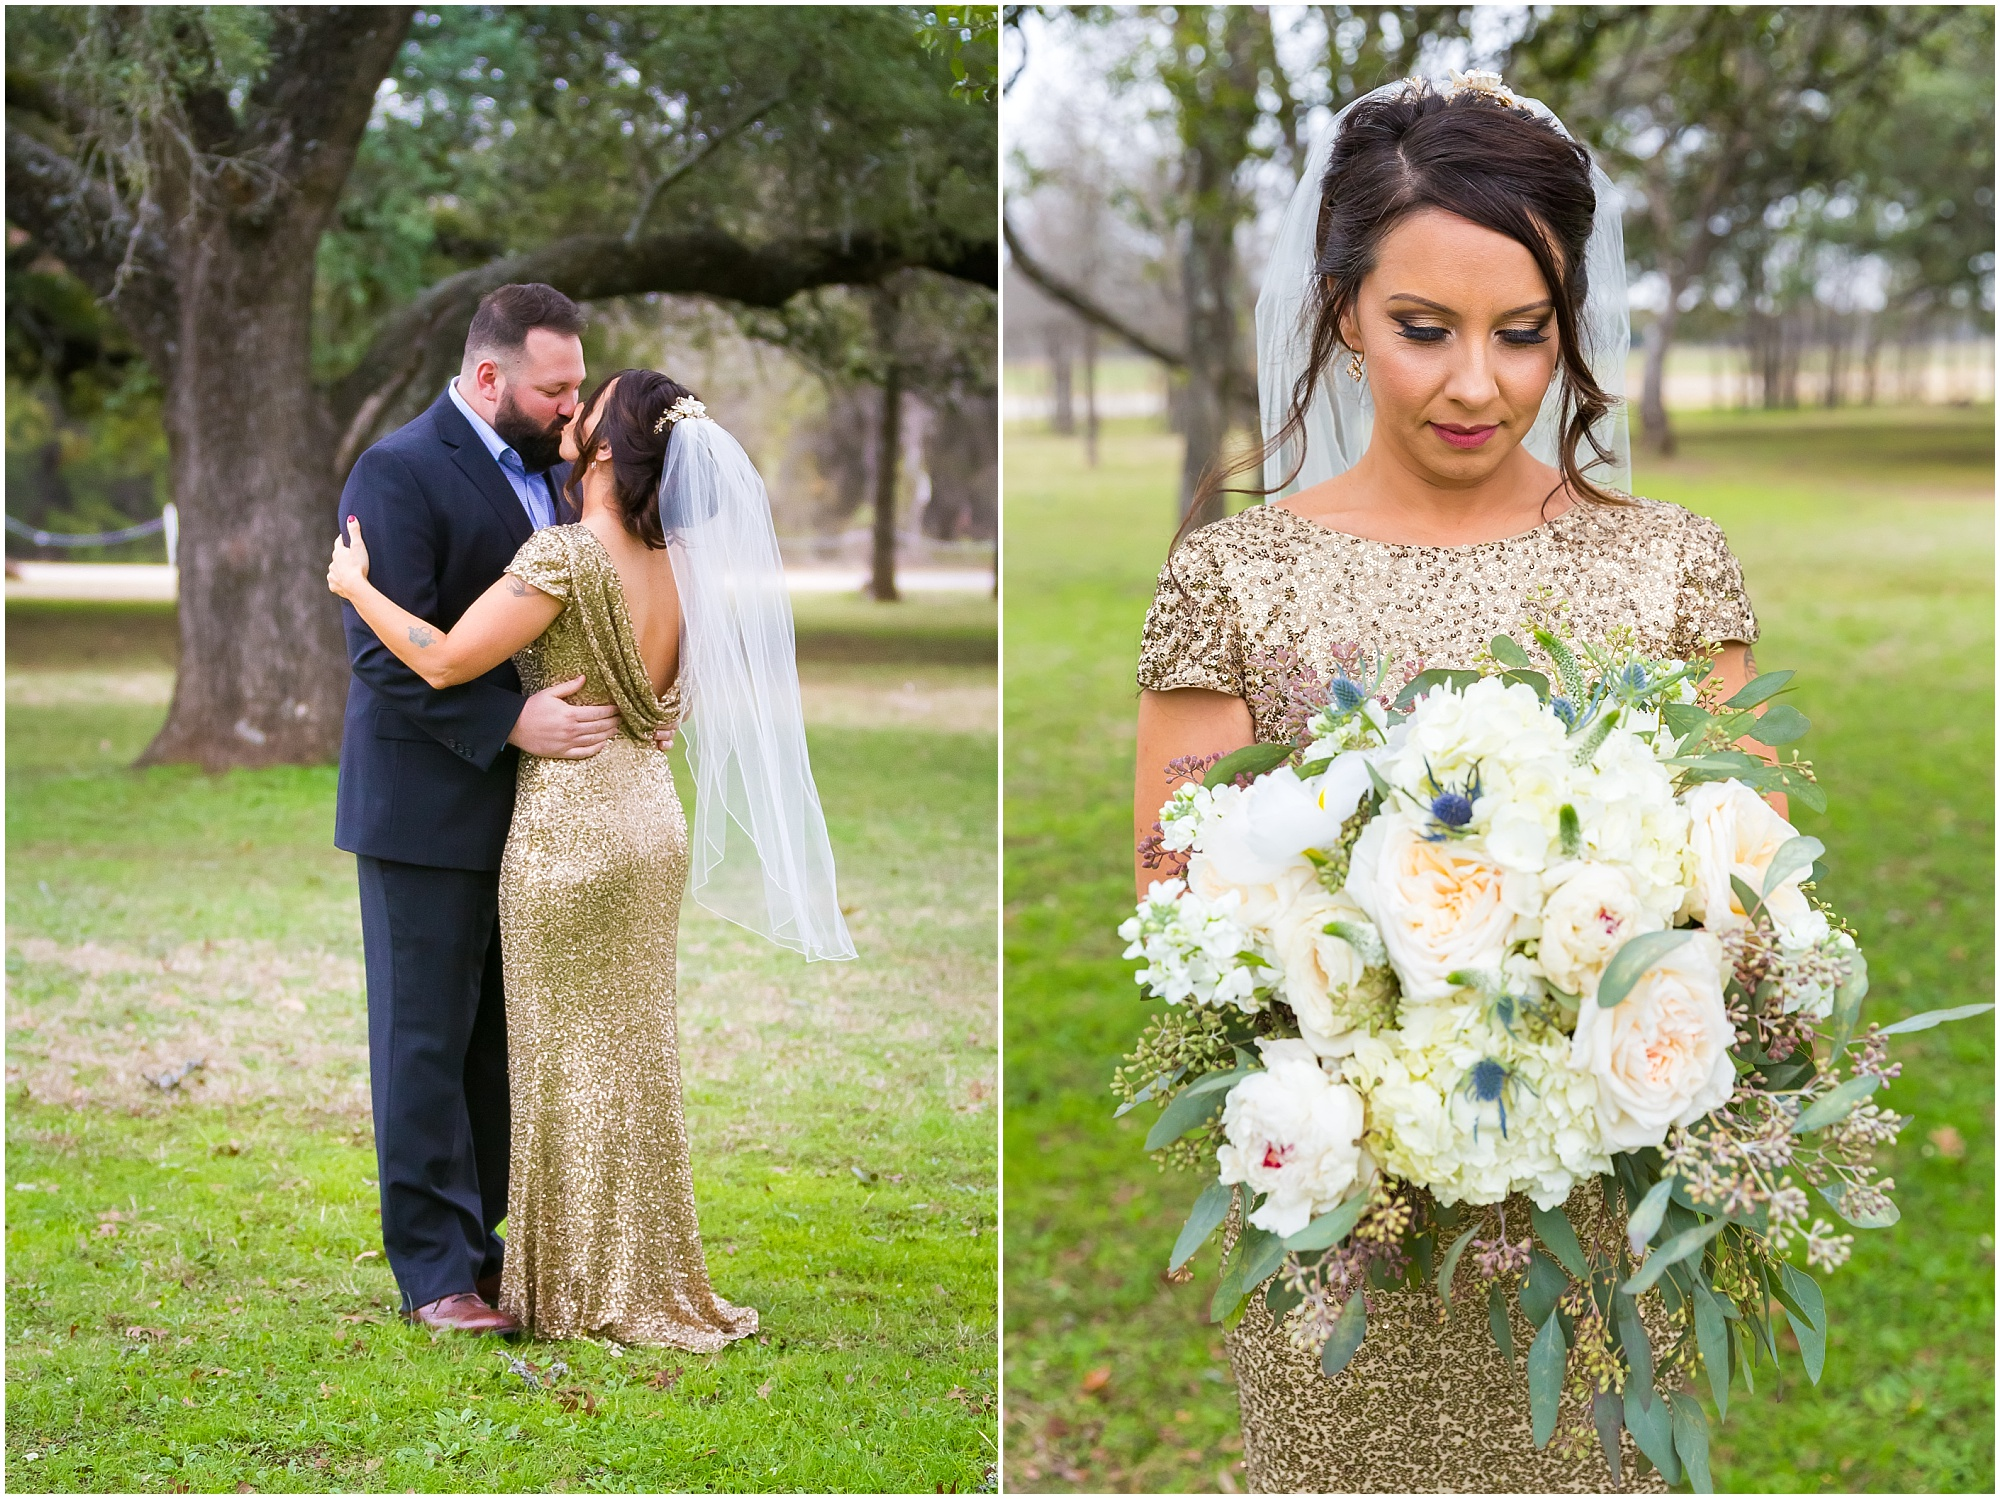 Winter-Elopement-Waco-Texas_0006.jpg